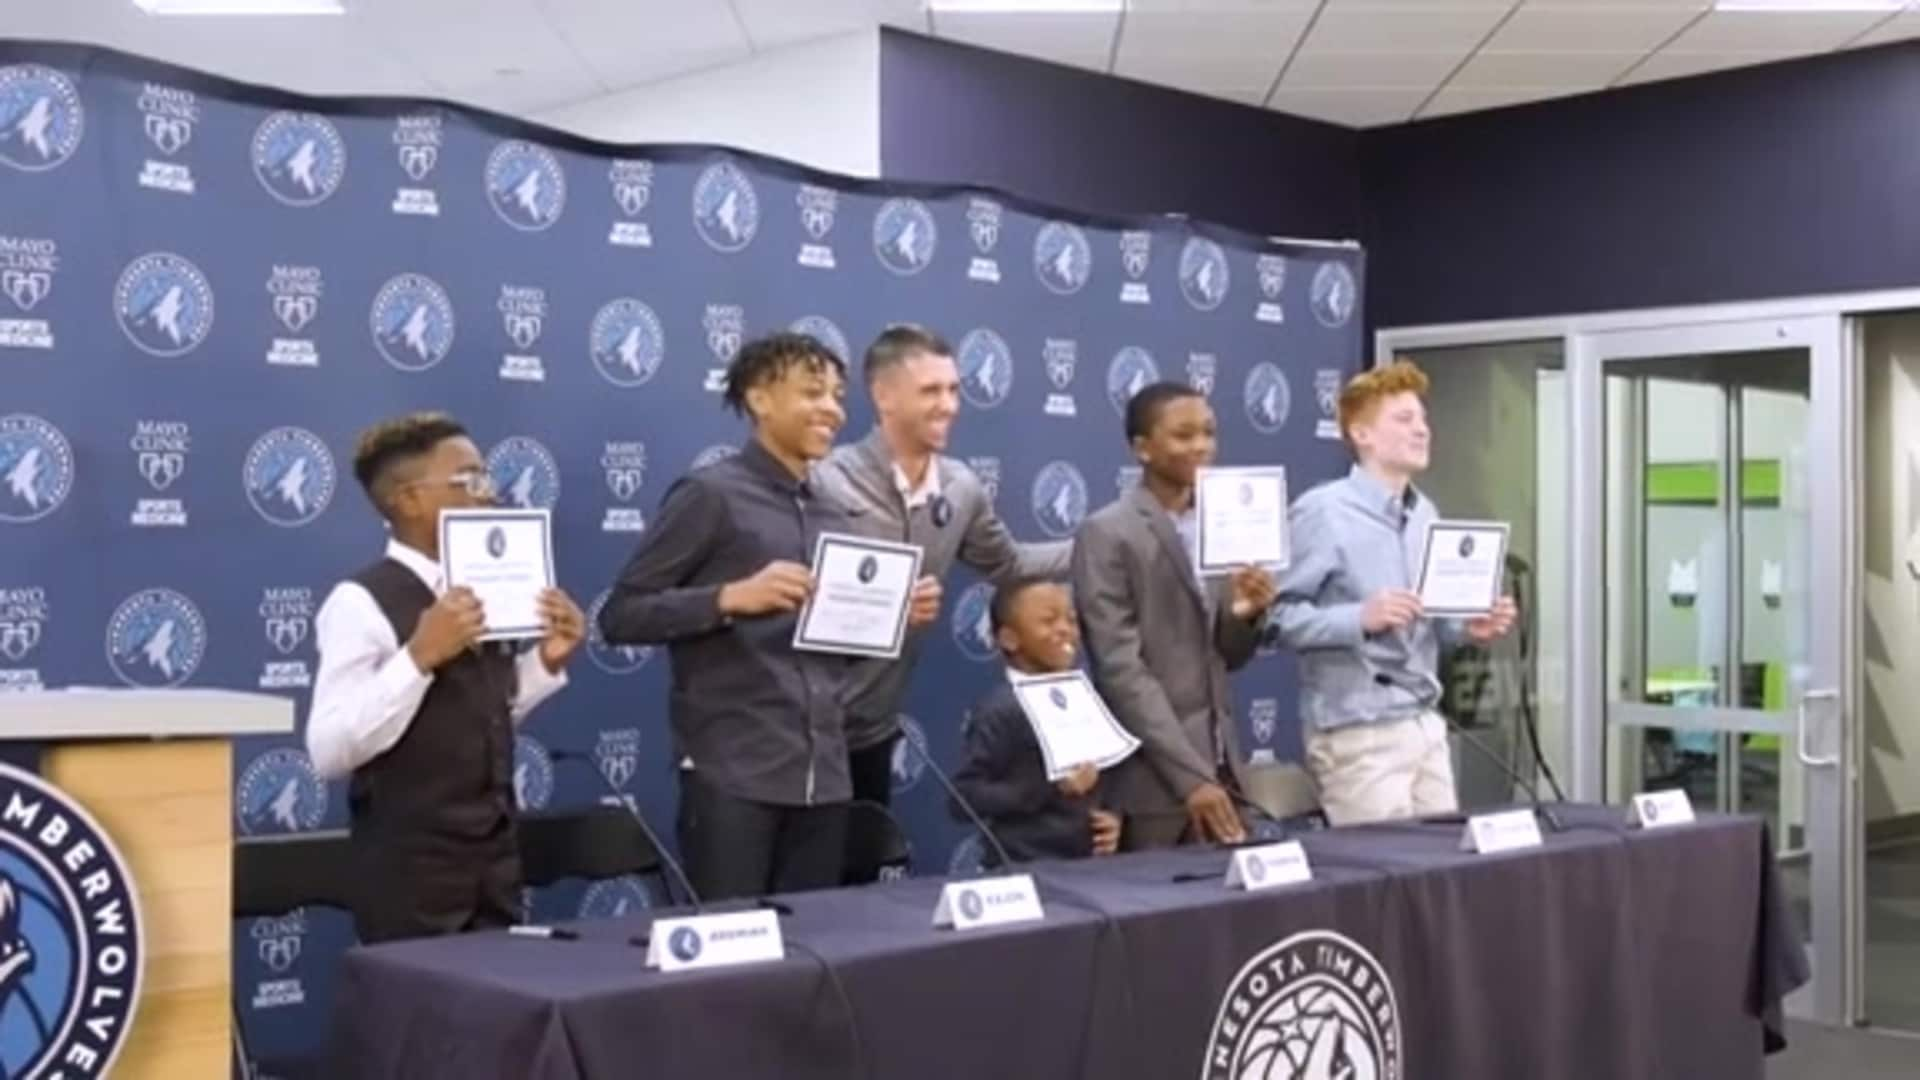 Timberwolves Jr. Pack Brings Benefits For All